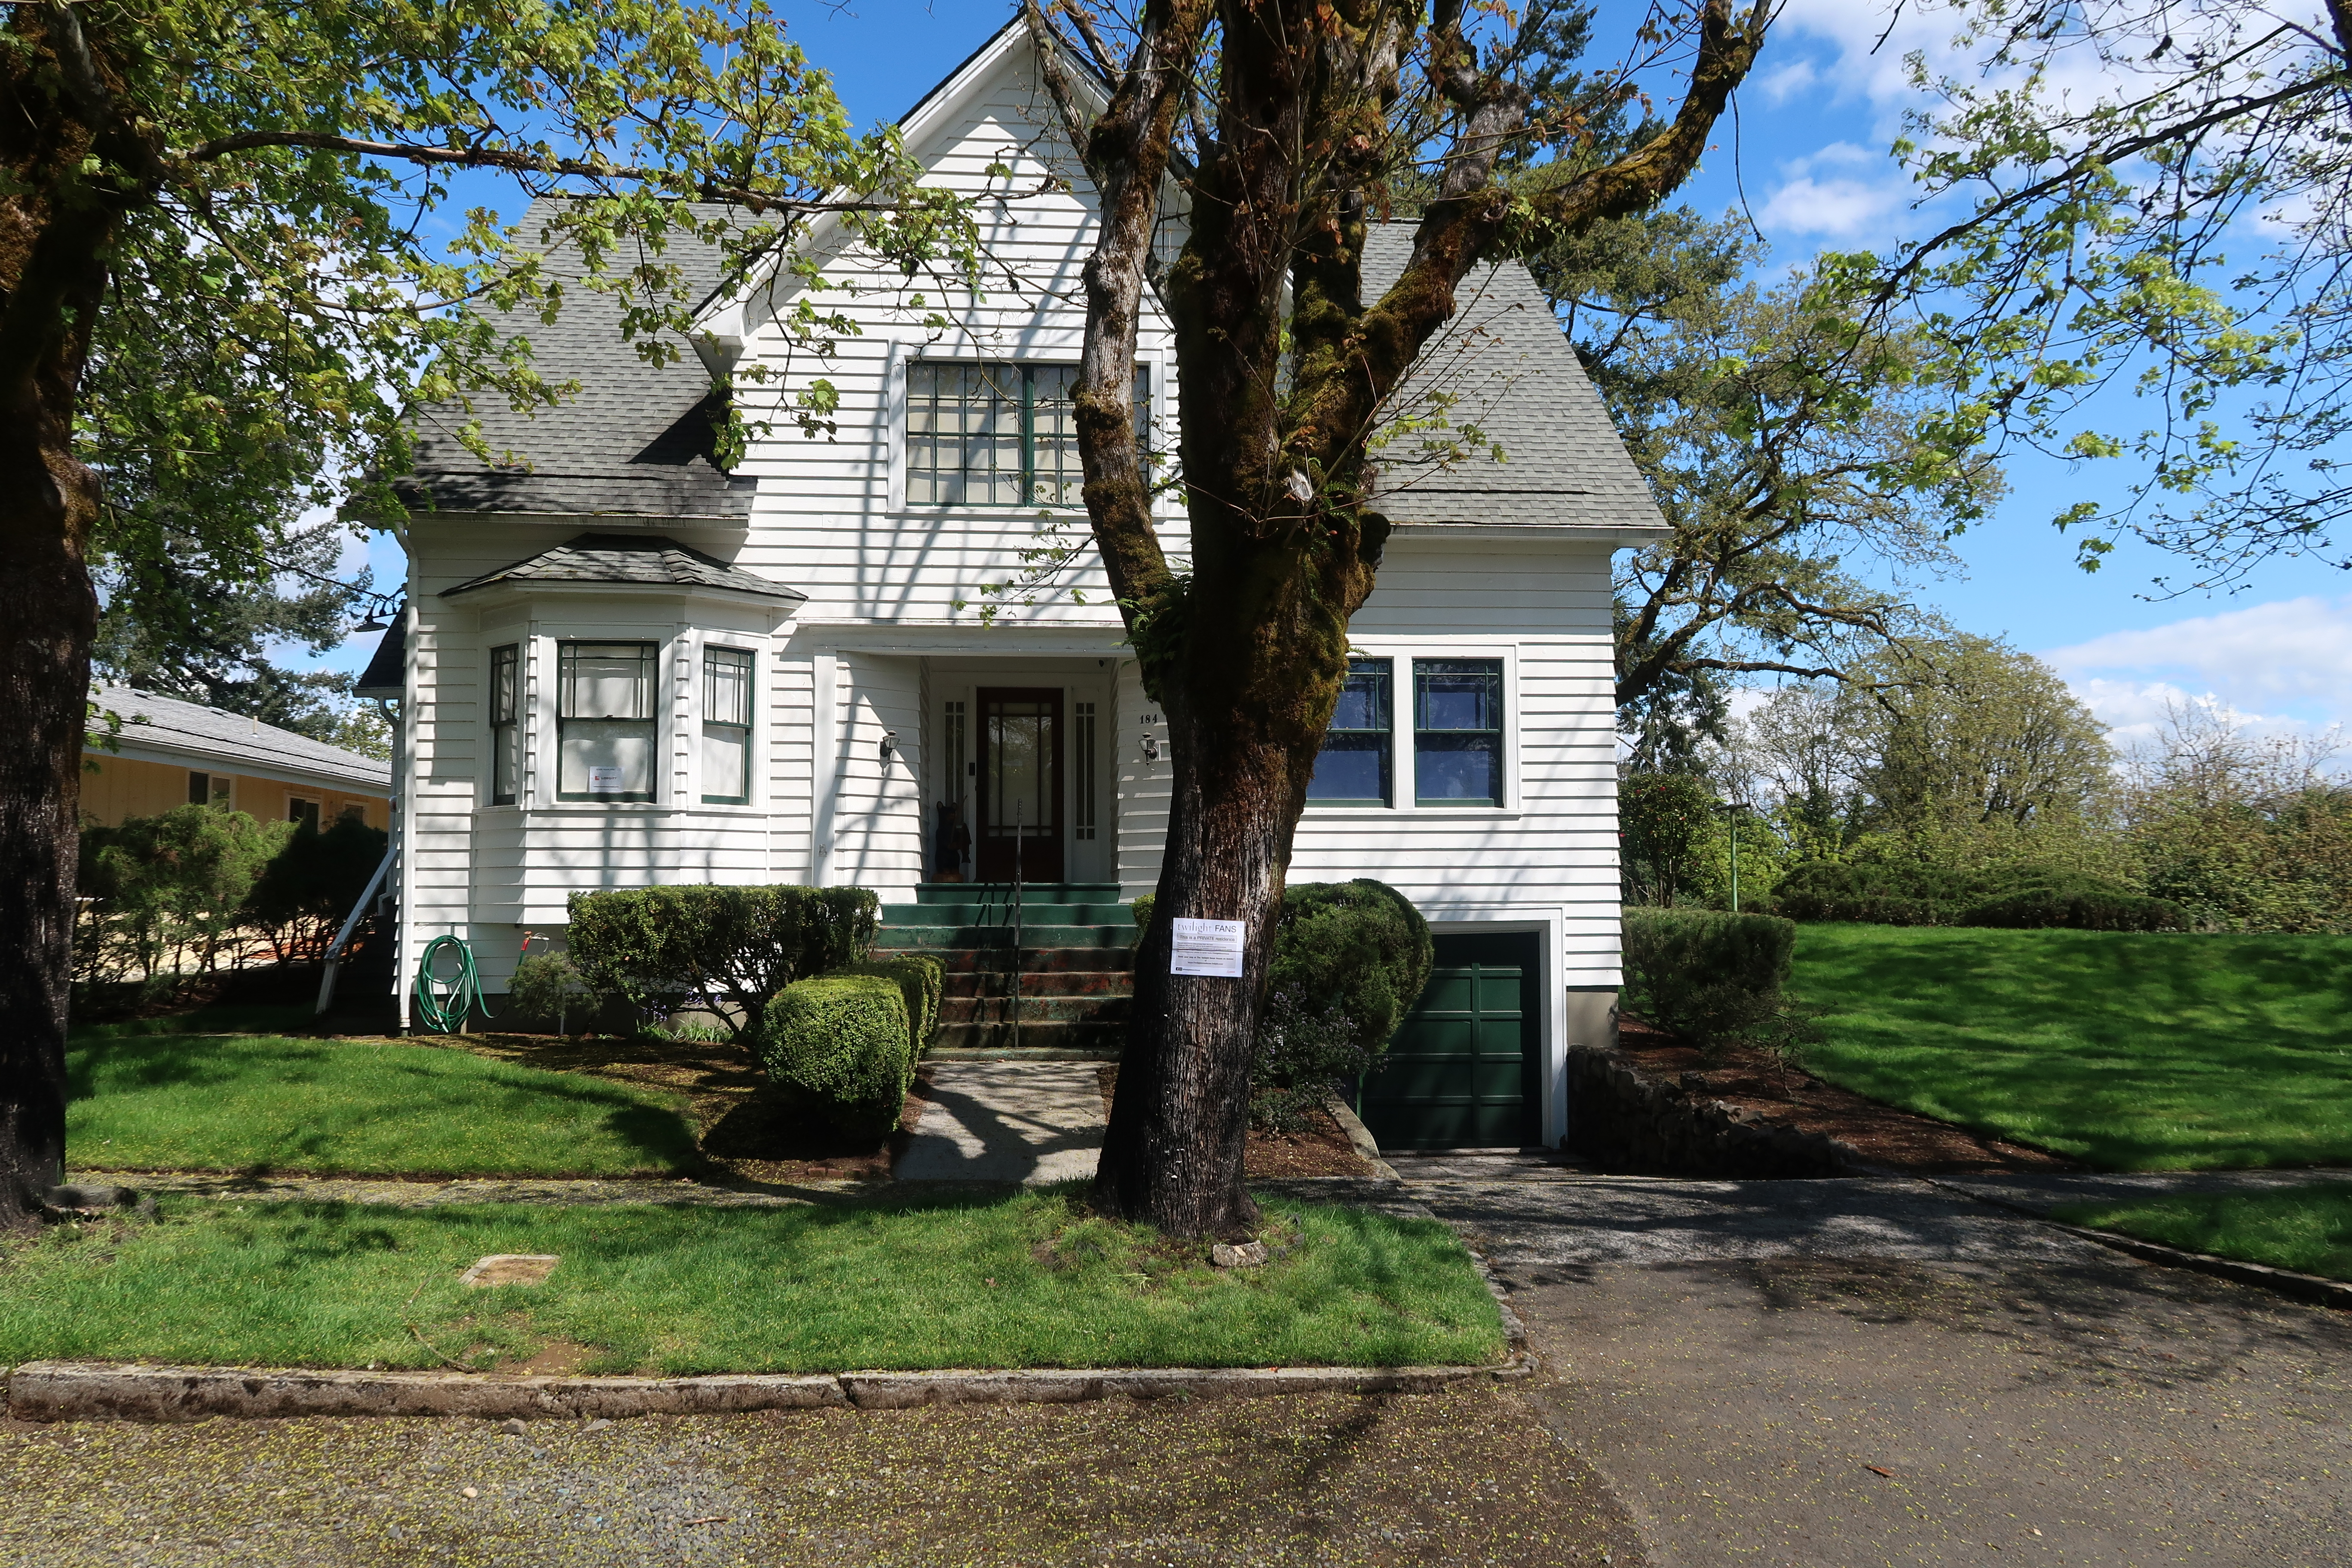 Twilight Swan House Houses For Rent In St Helens Oregon United States